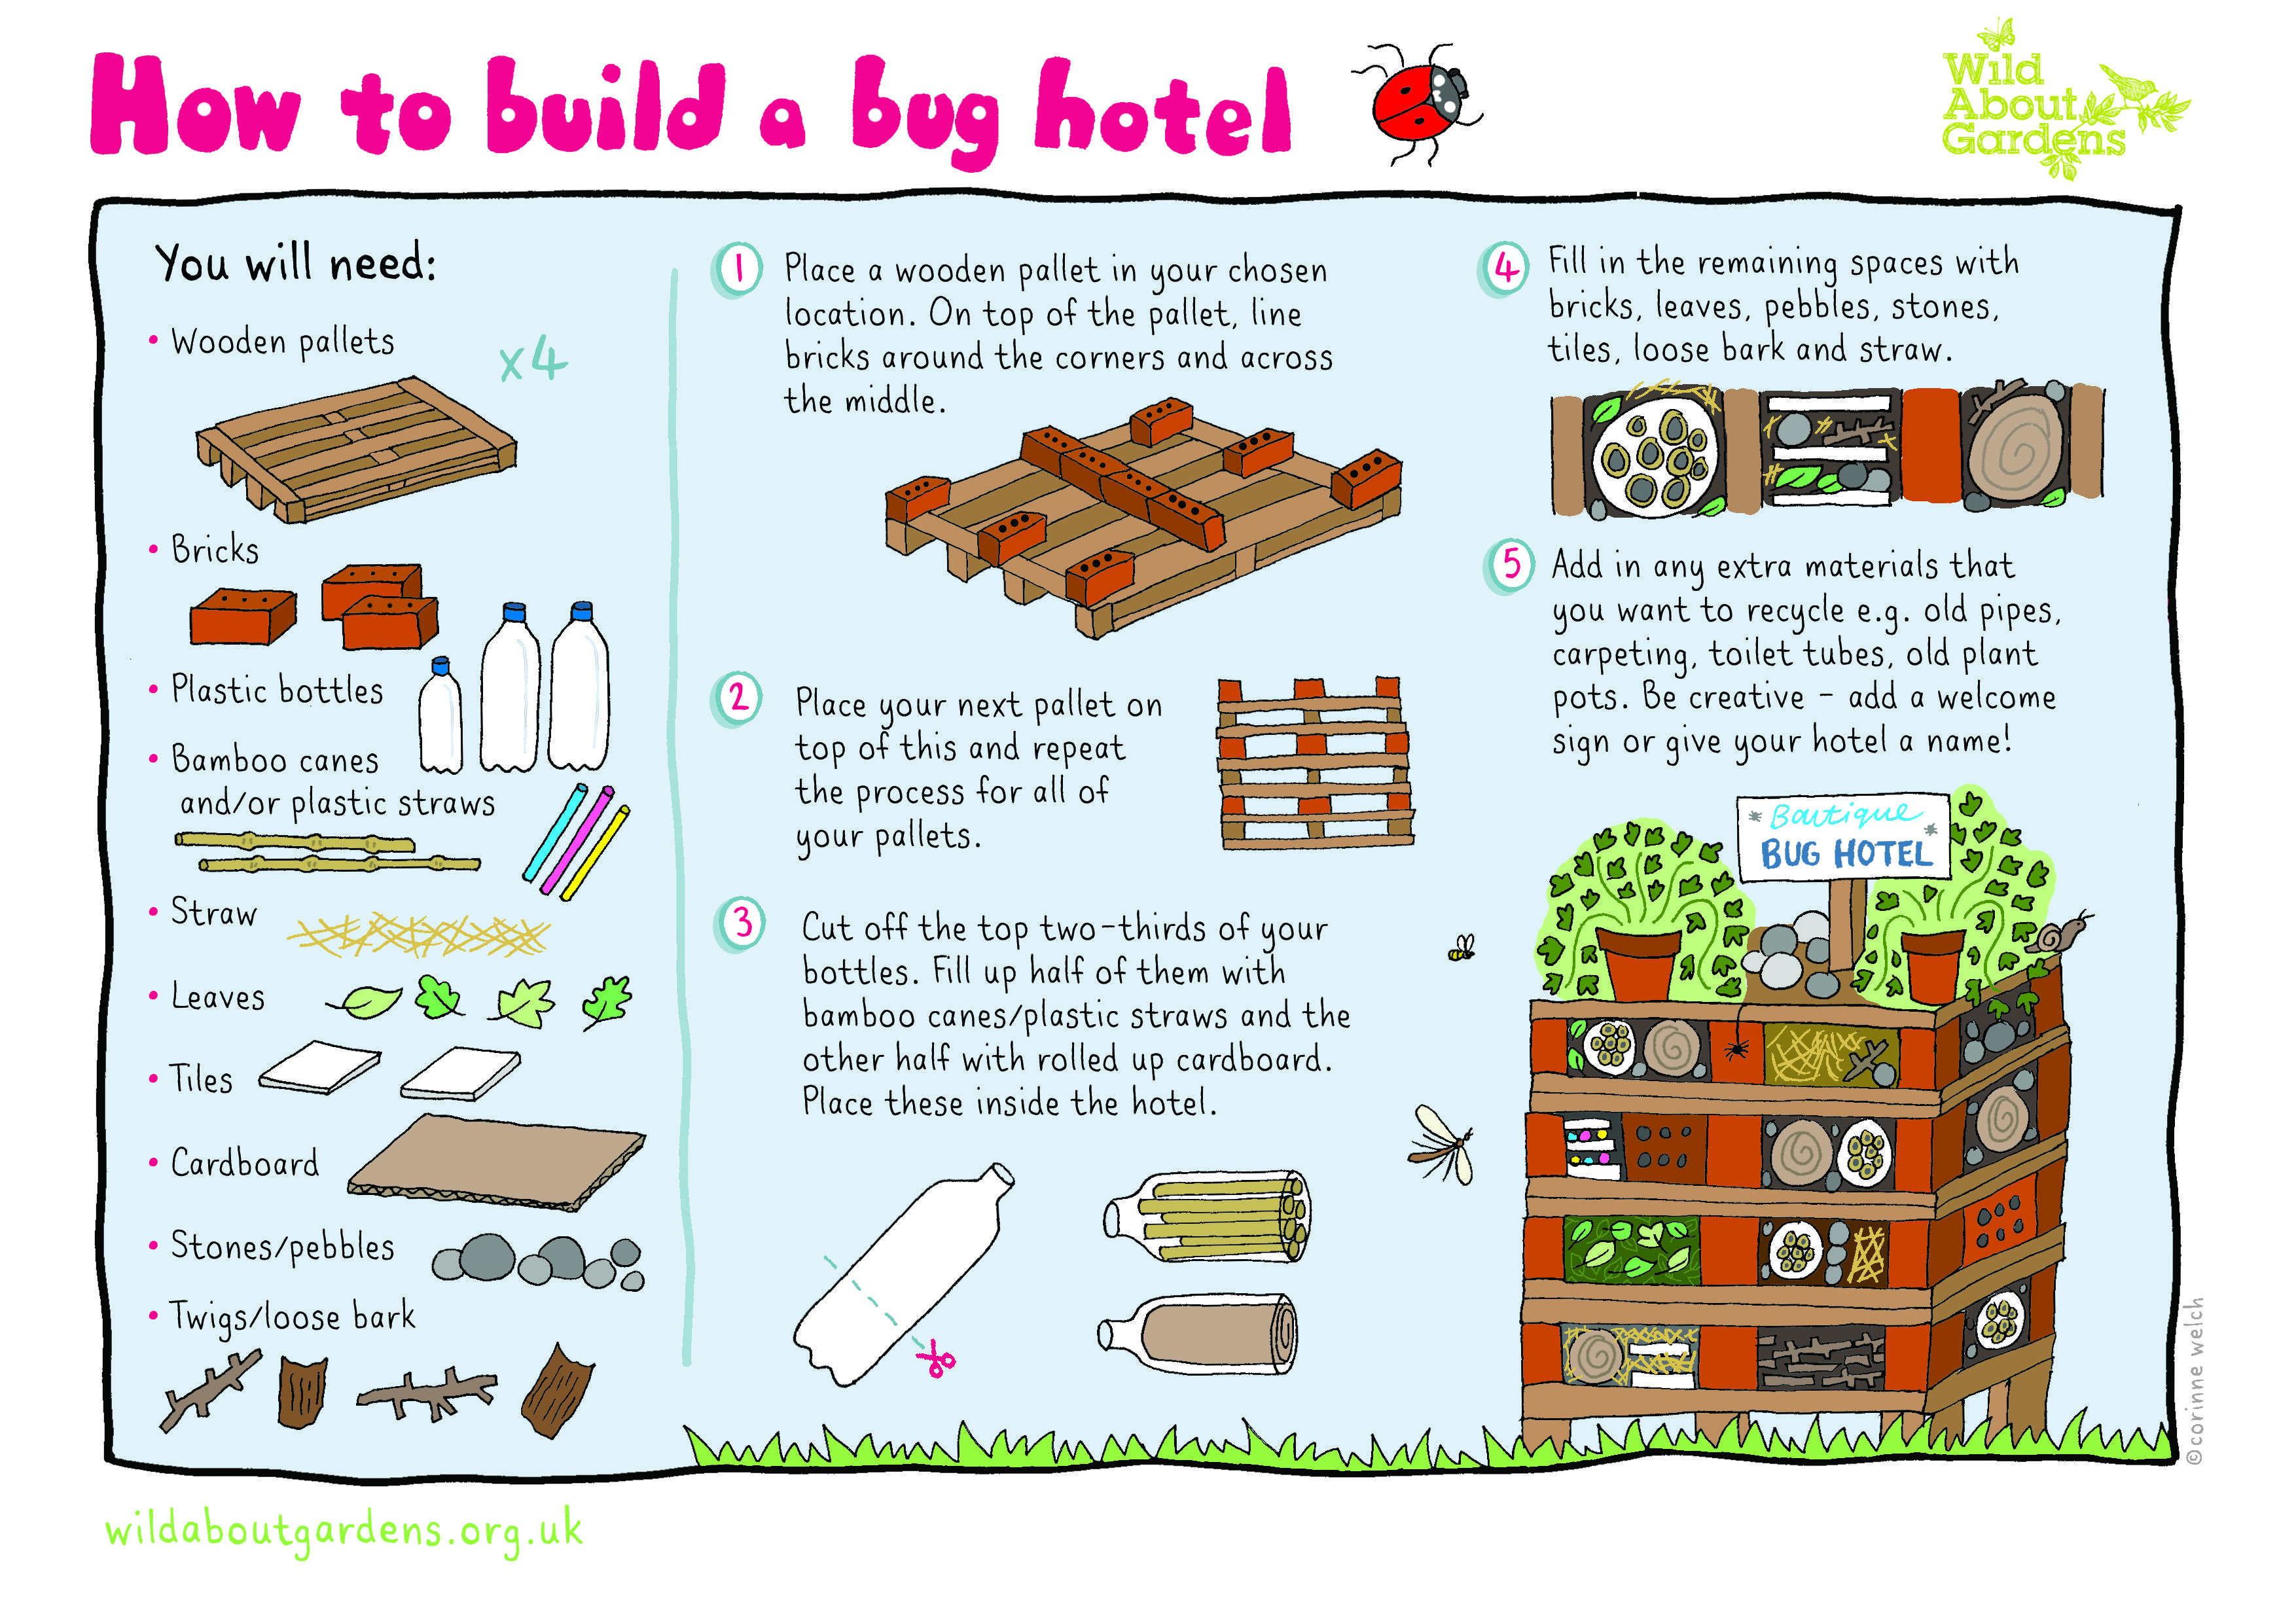 How To Build A Bug Hotel With Step By Step Instructions